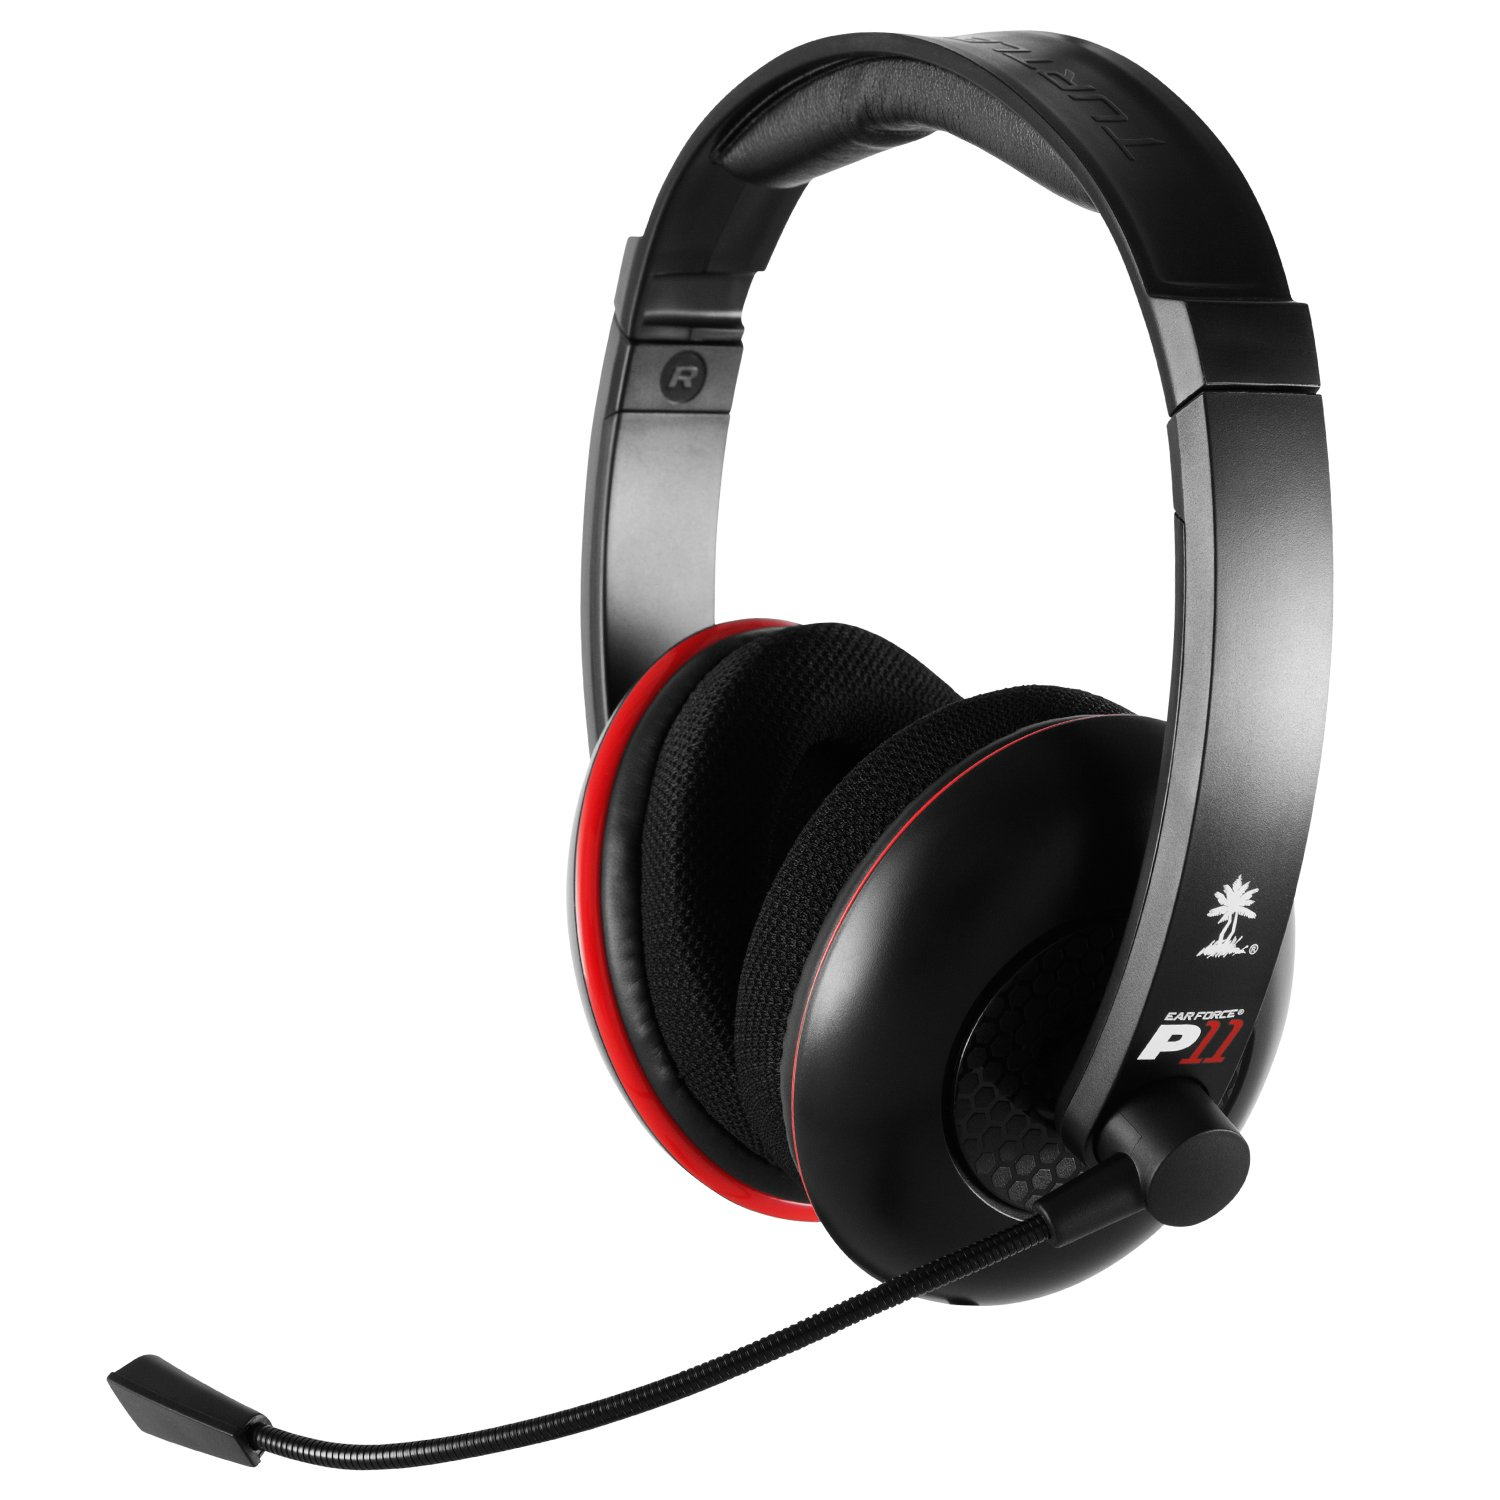 Turtle Beach - Ear Force P11 Amplified Stereo Gaming Headset - PS3 (Discontinued by Manufacturer) by Turtle Beach